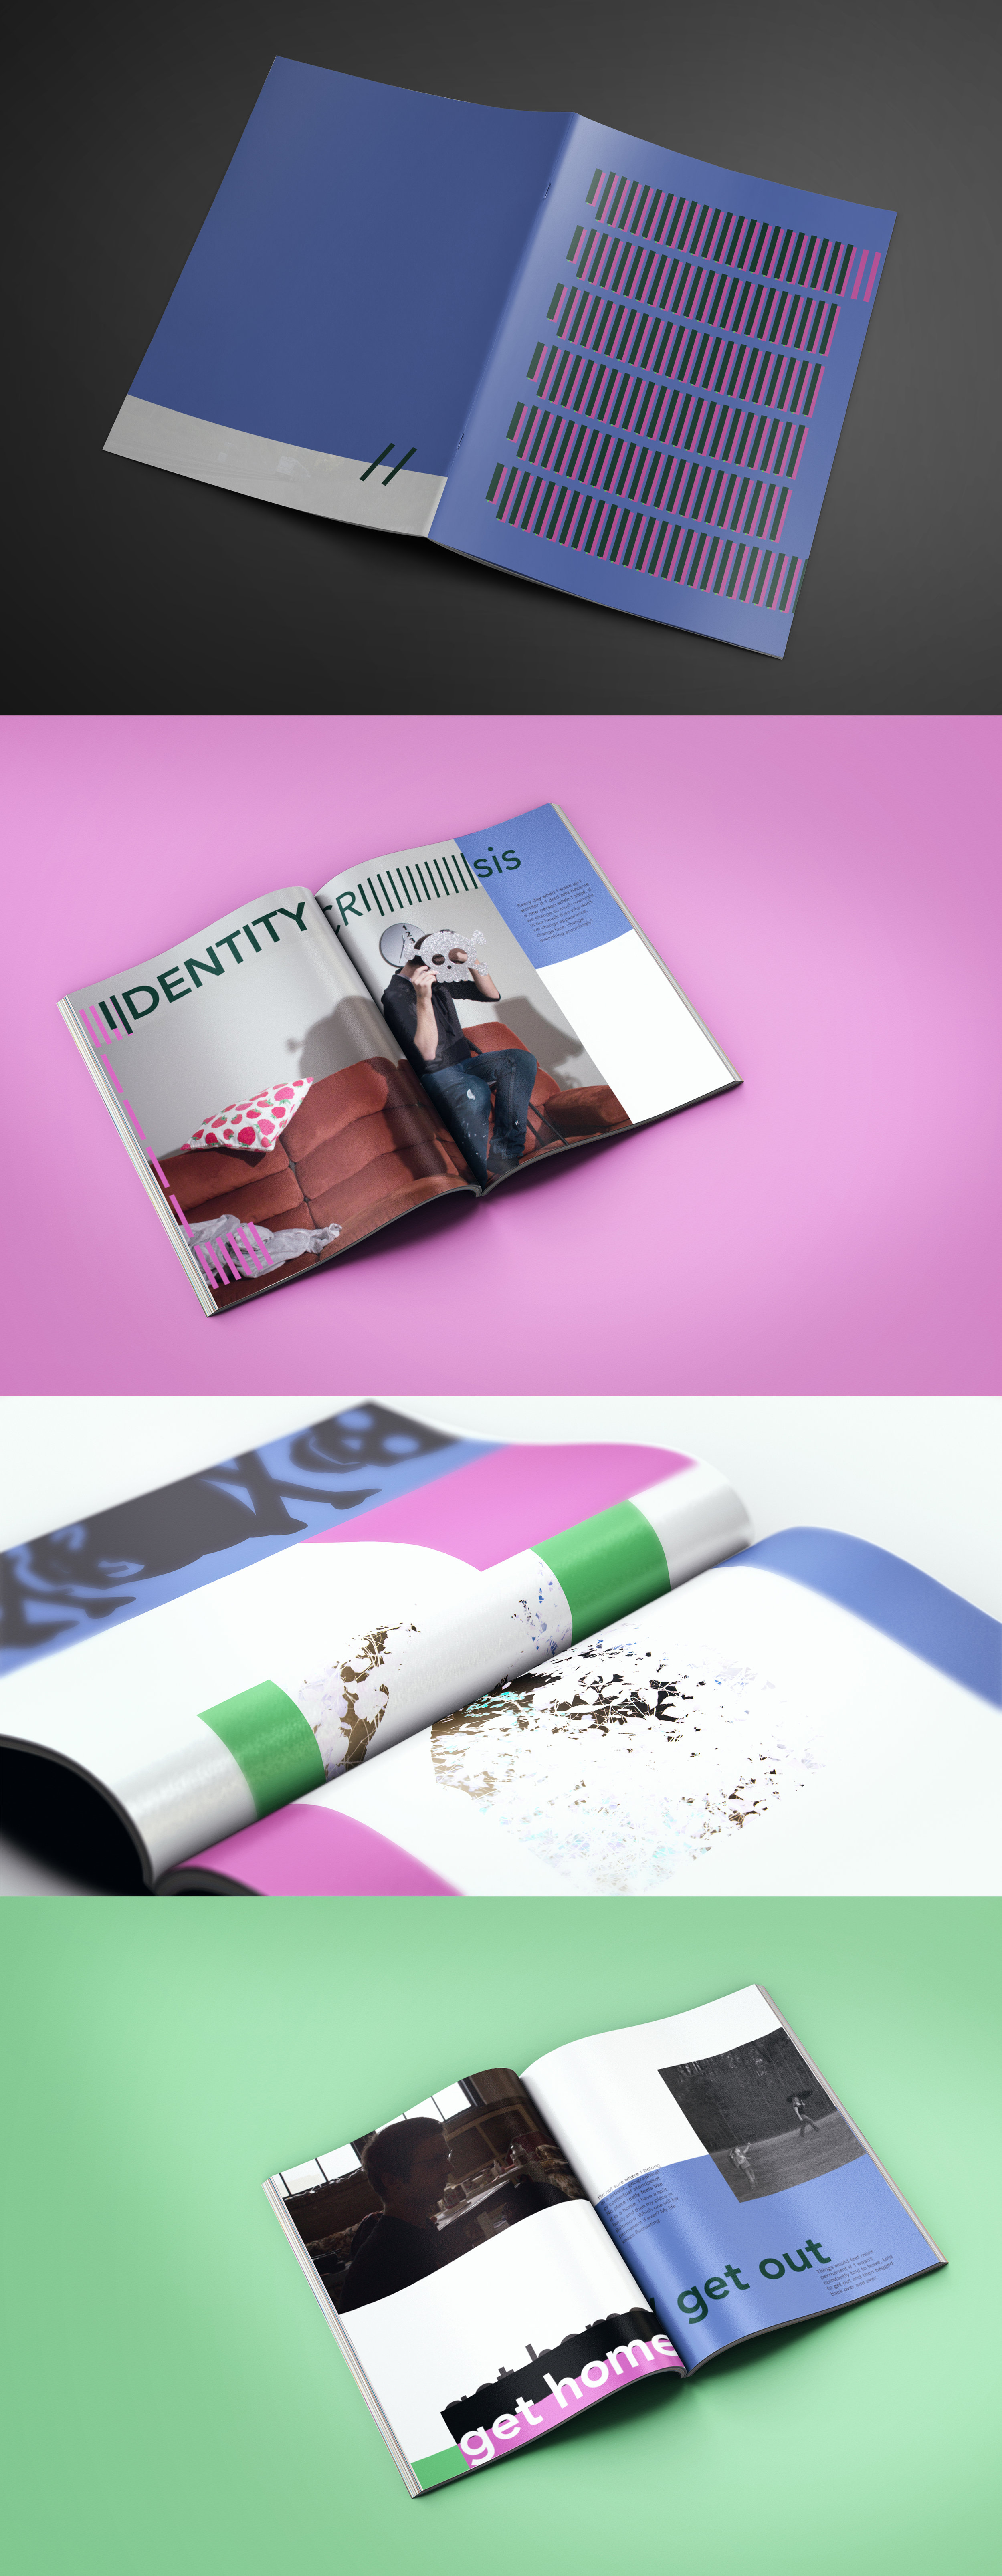 Reflective Magazine - A look into what a publication might be if it was a communication of inner thoughts.